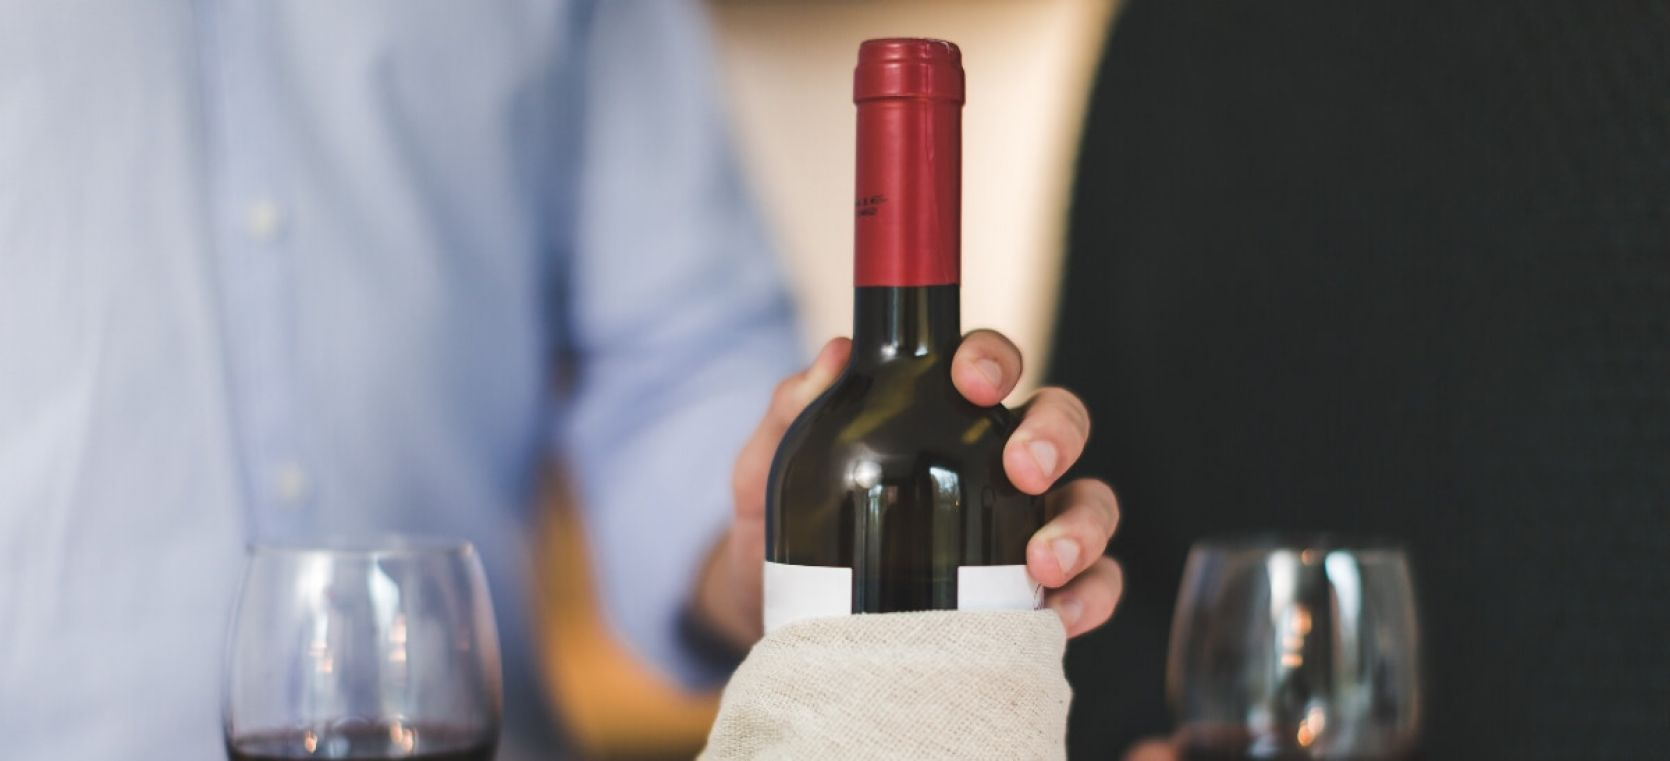 Photo for: 10 Ways That Wineries Can Help Restaurants Boost Their On-Premise Sales